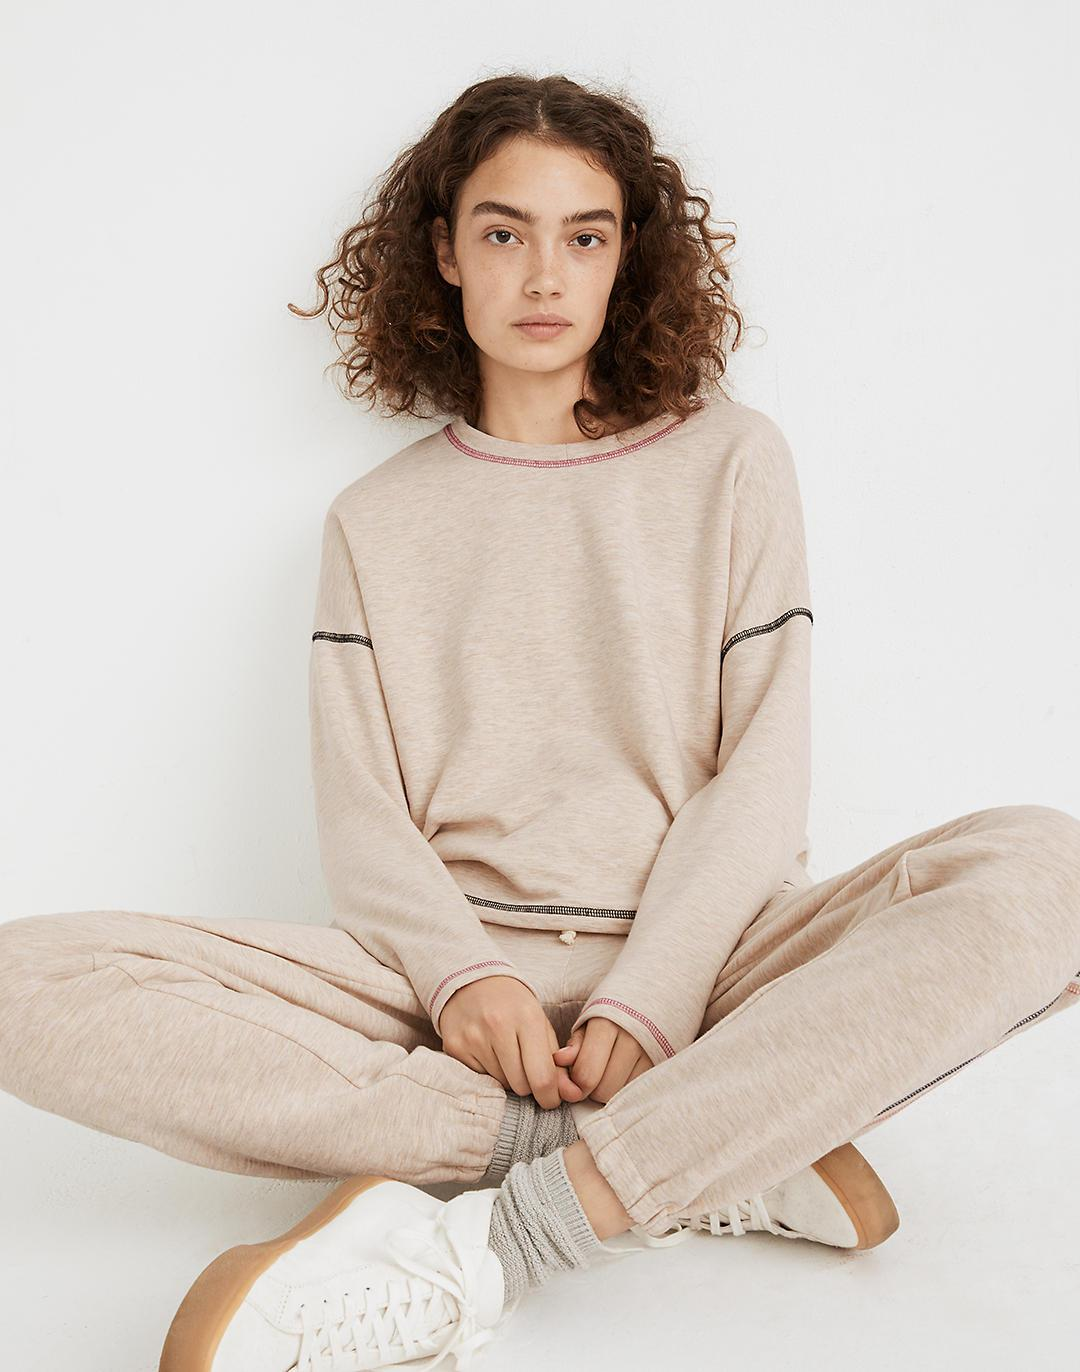 MWL Superbrushed Contrast-Stitched Easygoing Sweatshirt